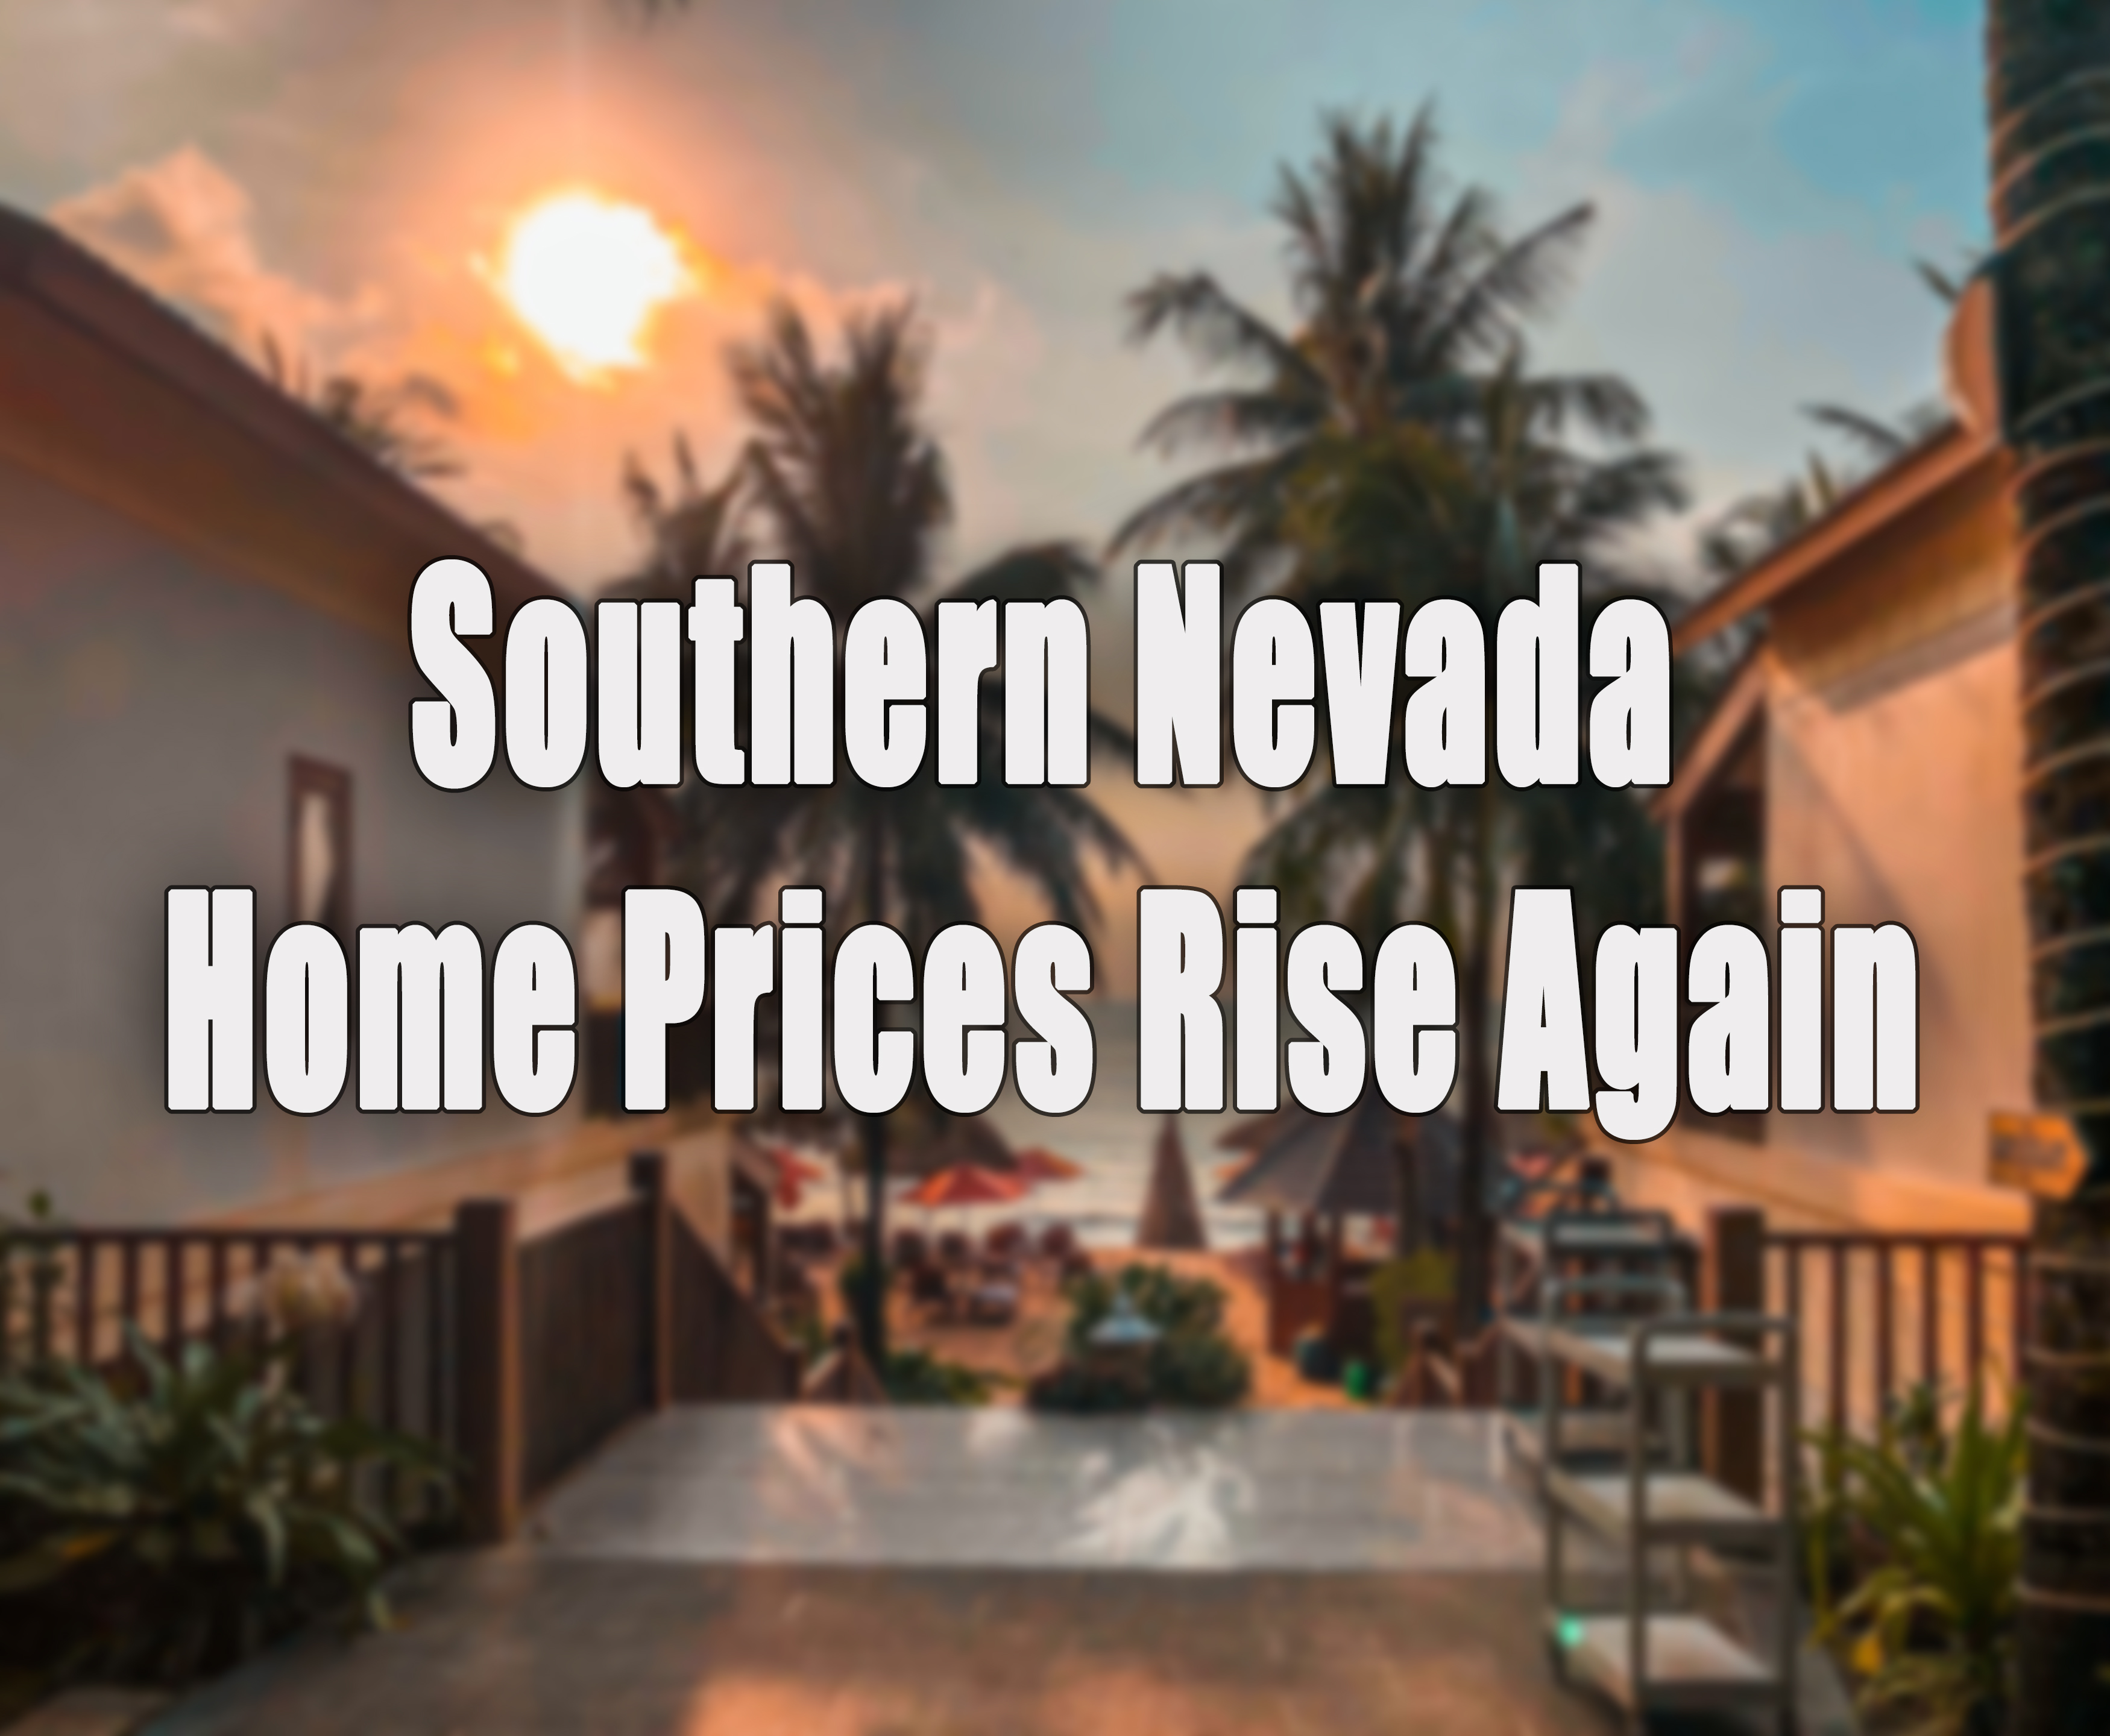 Southern Nevada Home Prices Rising.jpg